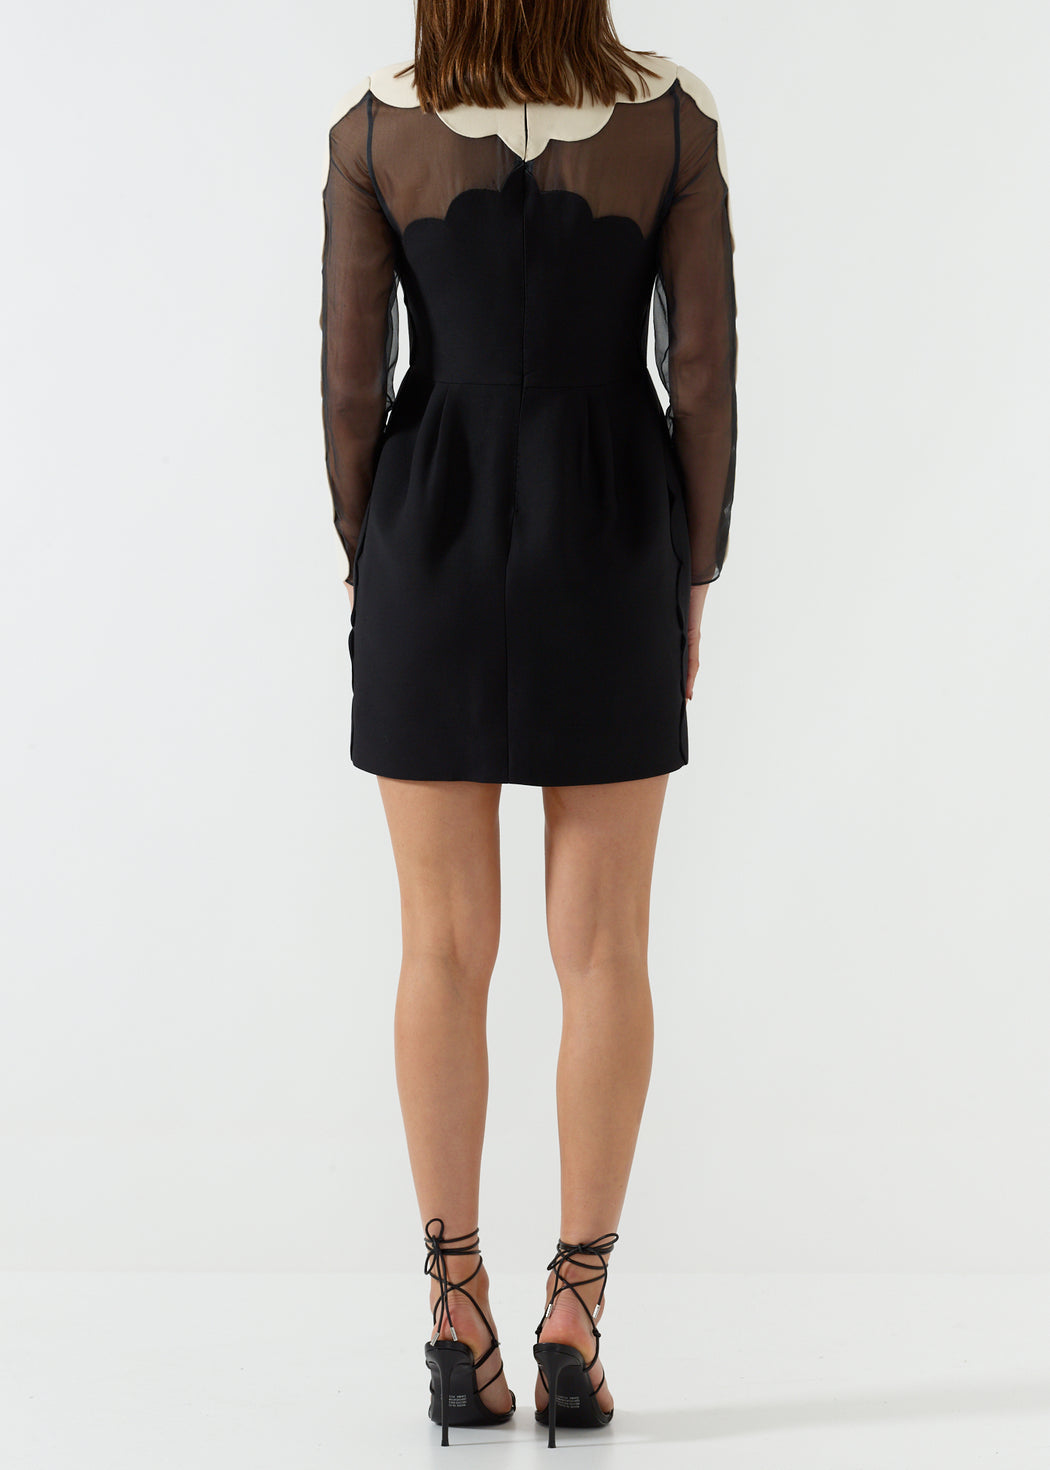 Valentino Mini Dress